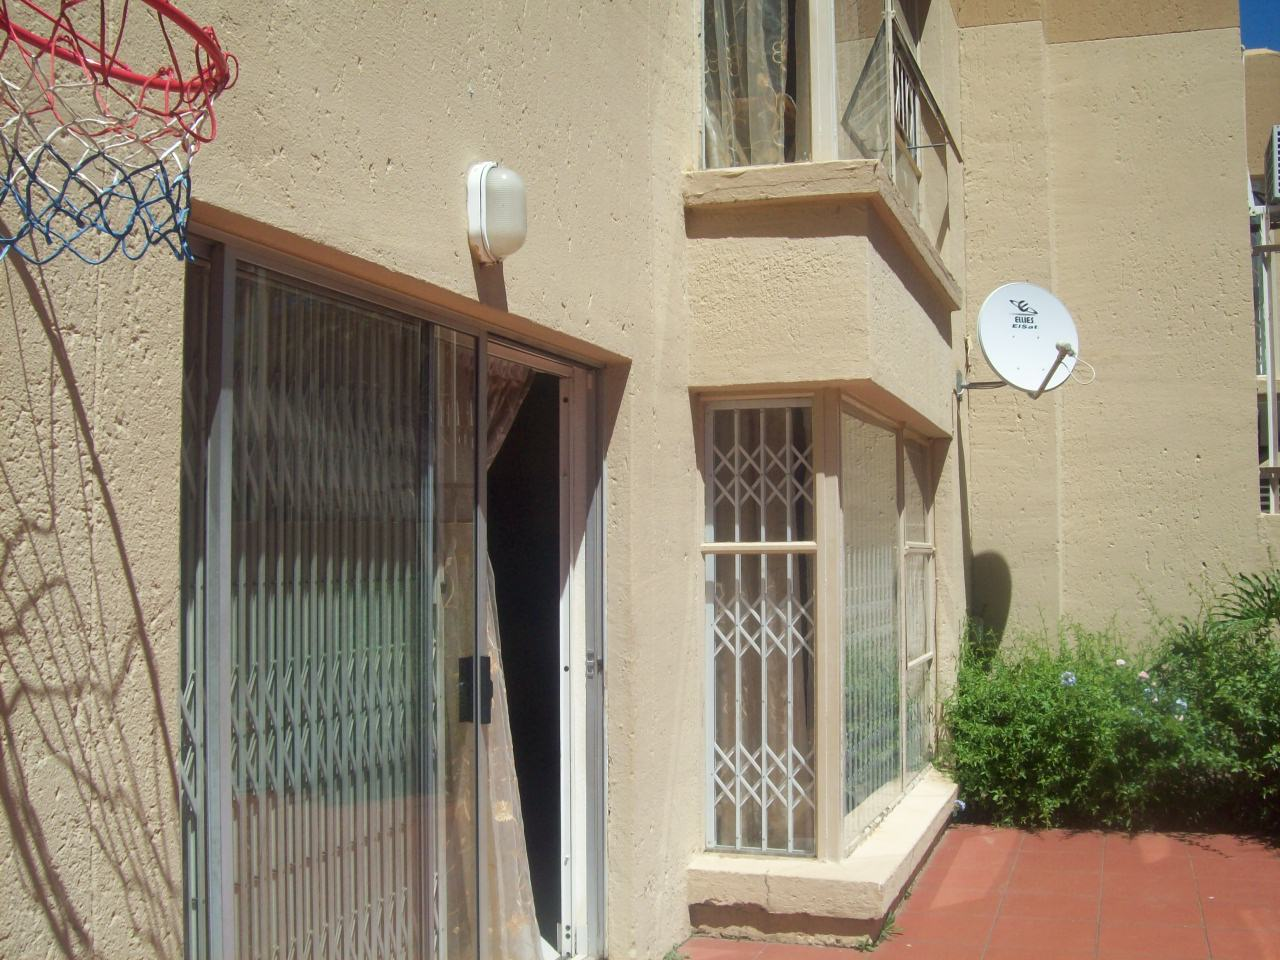 3 Bedroom Townhouse for sale in Bassonia ENT0071278 : photo#53